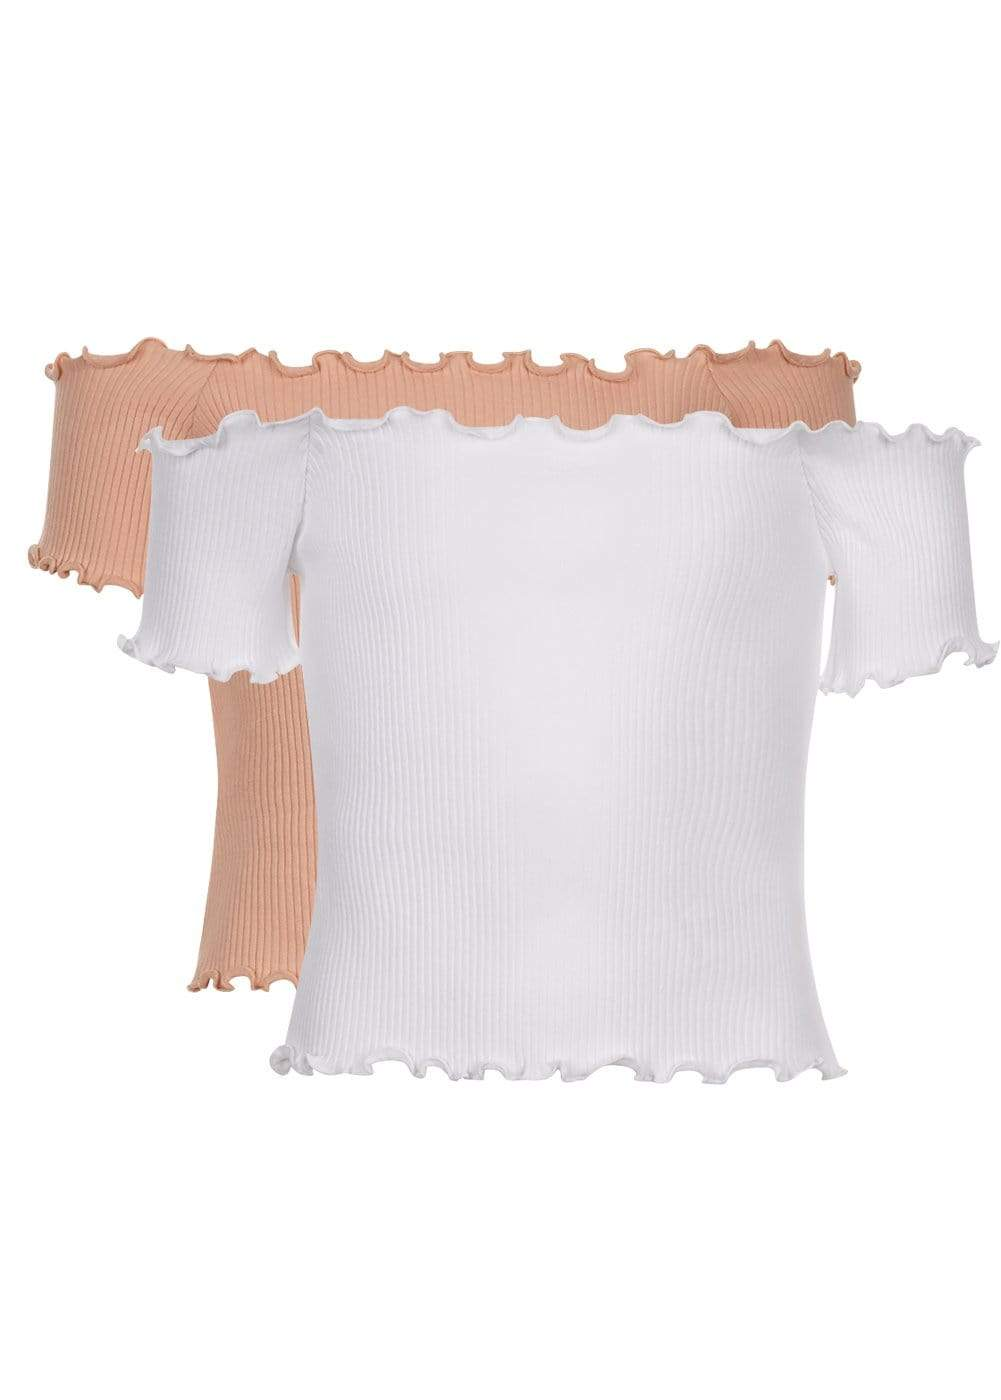 Teenzshop Girls Twin Pack Bardot Top Pink/White